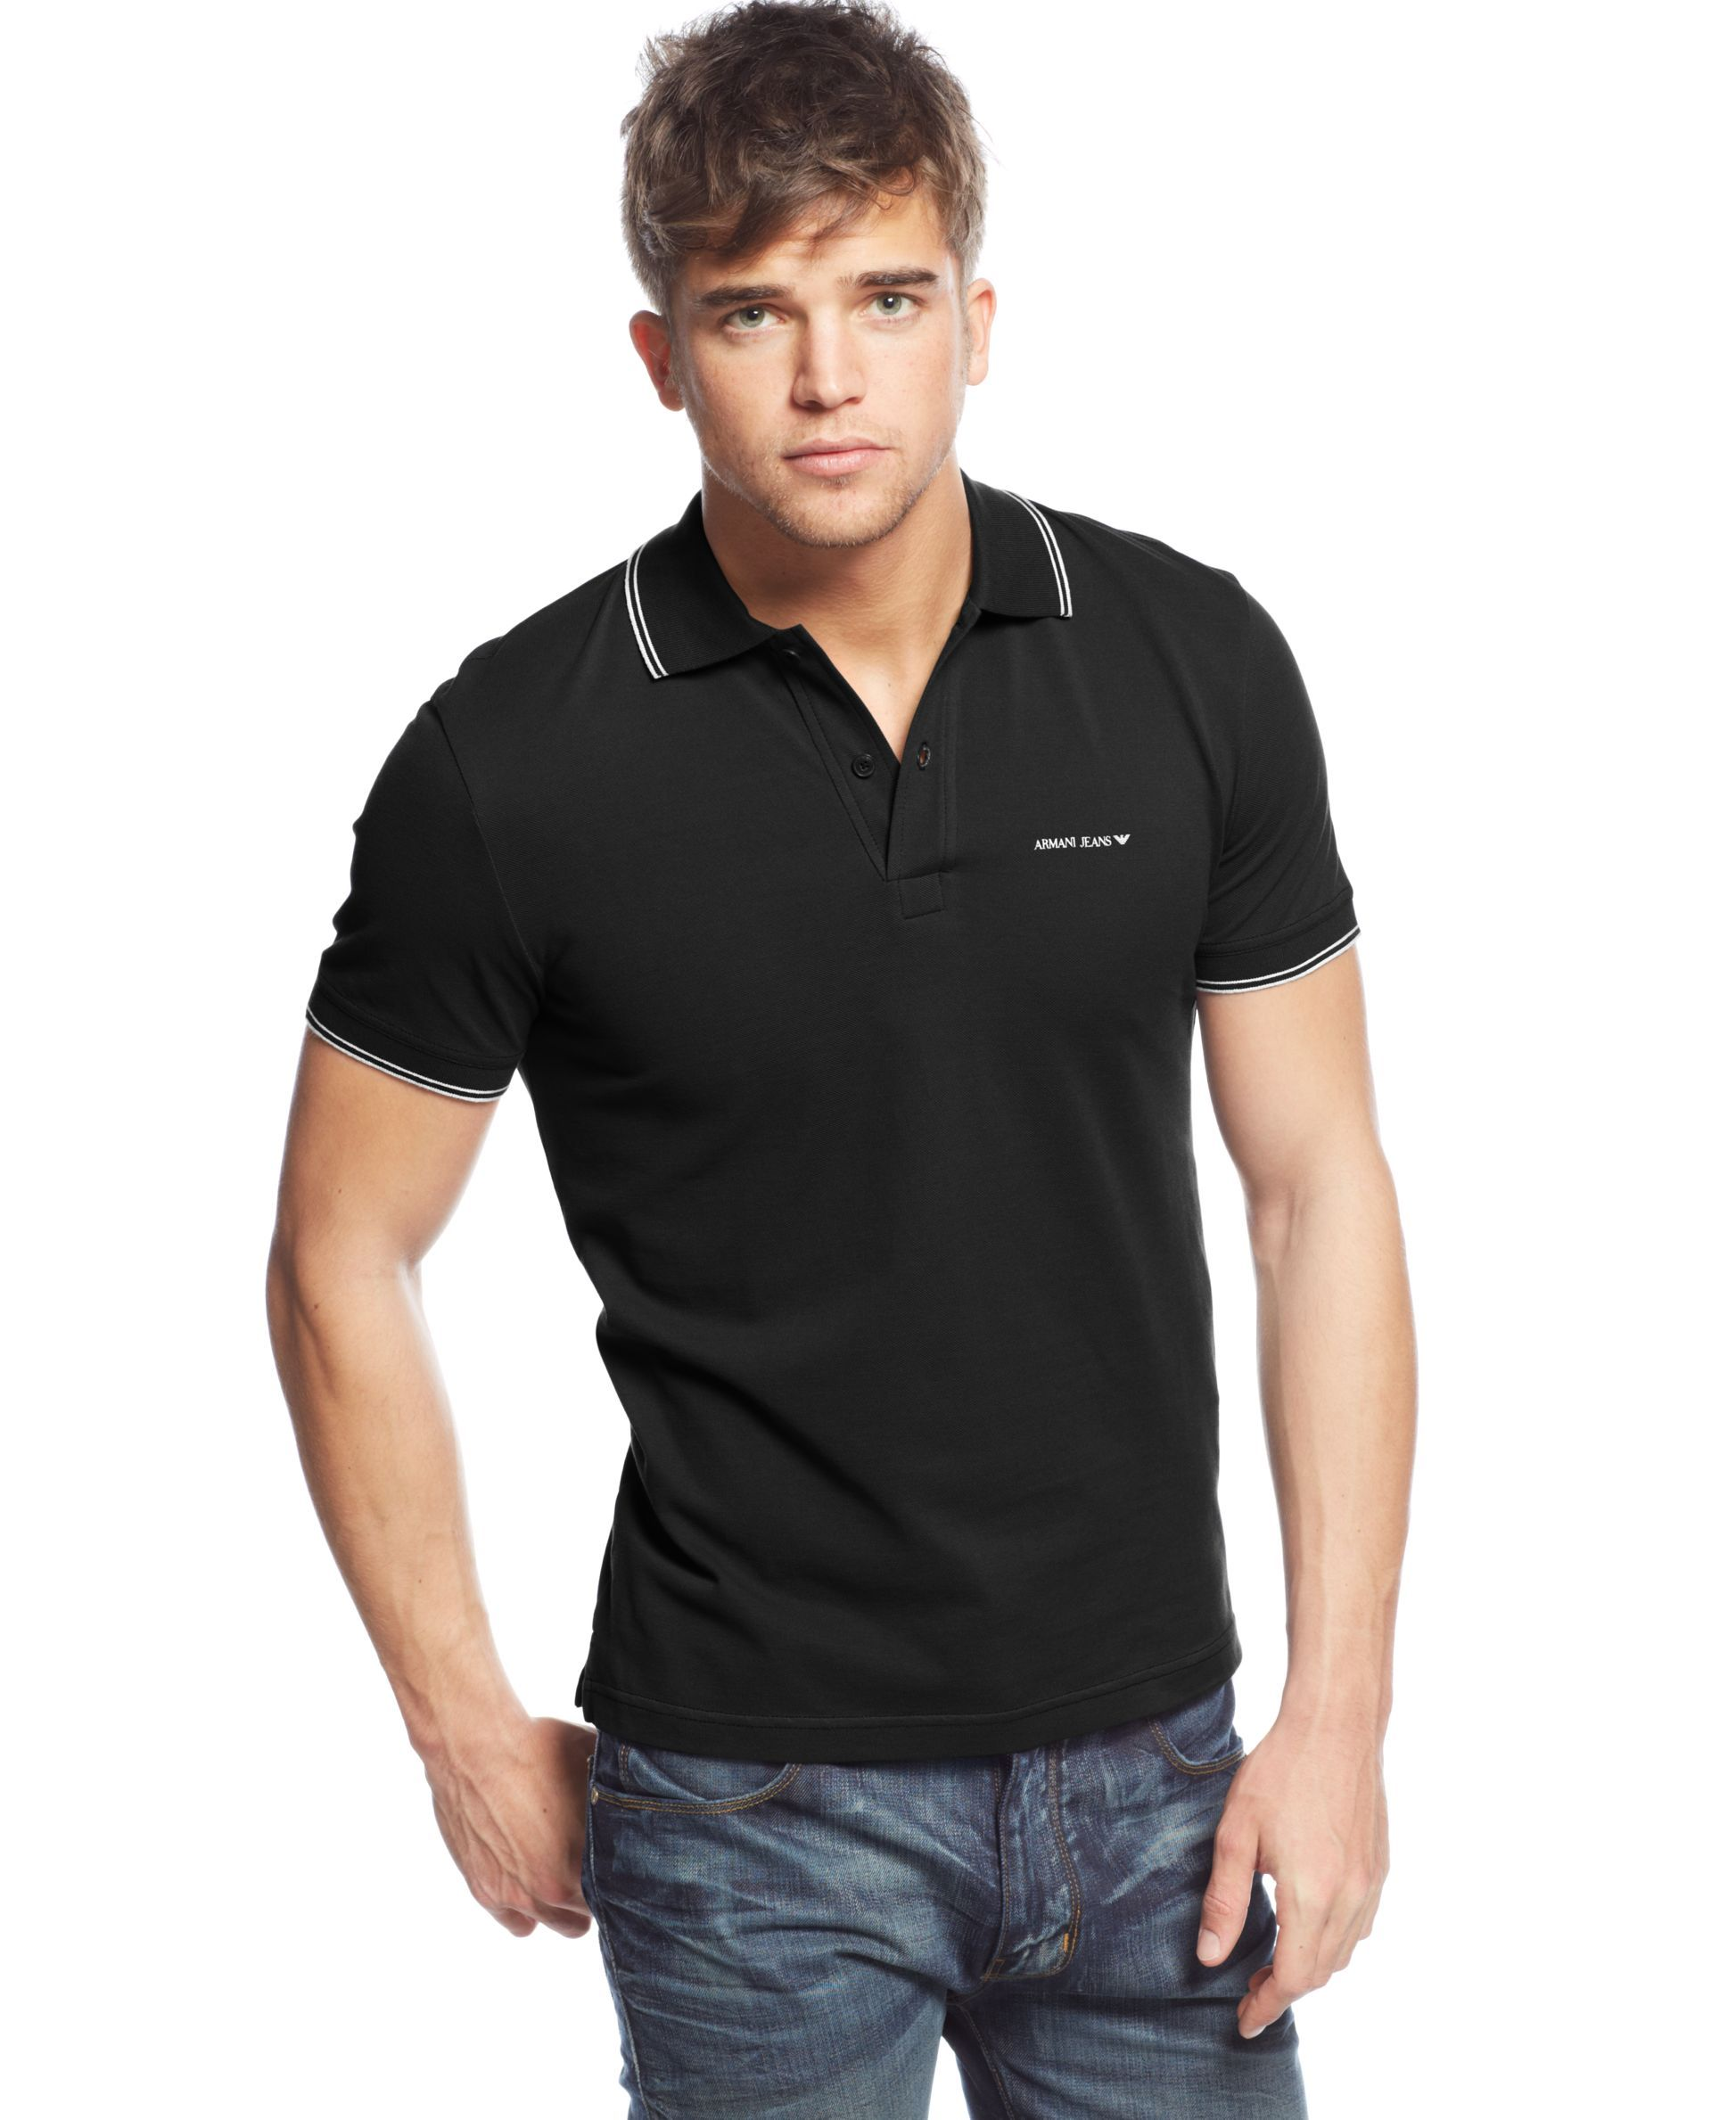 Armani jeans tipped polo with images armani jeans men